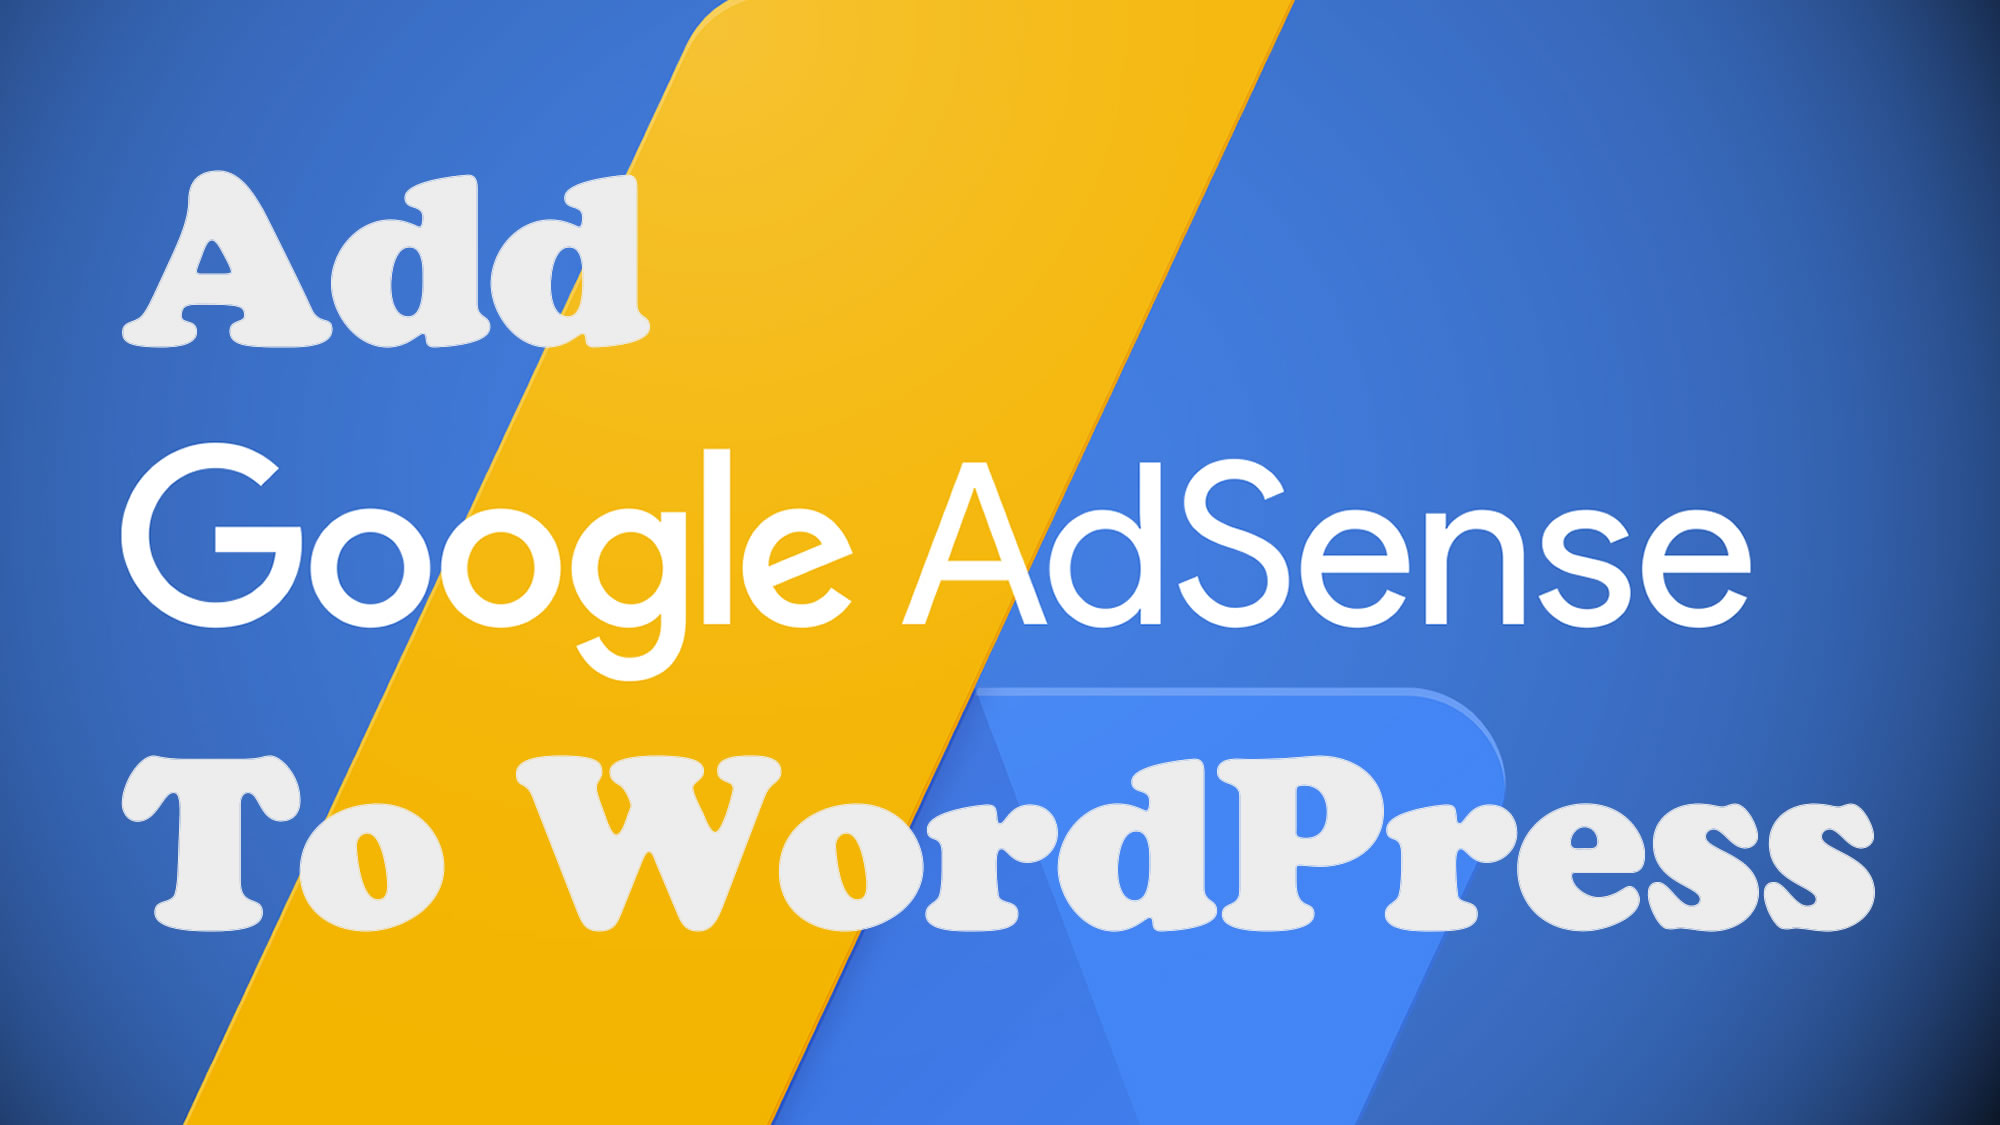 how to add website to google adsense